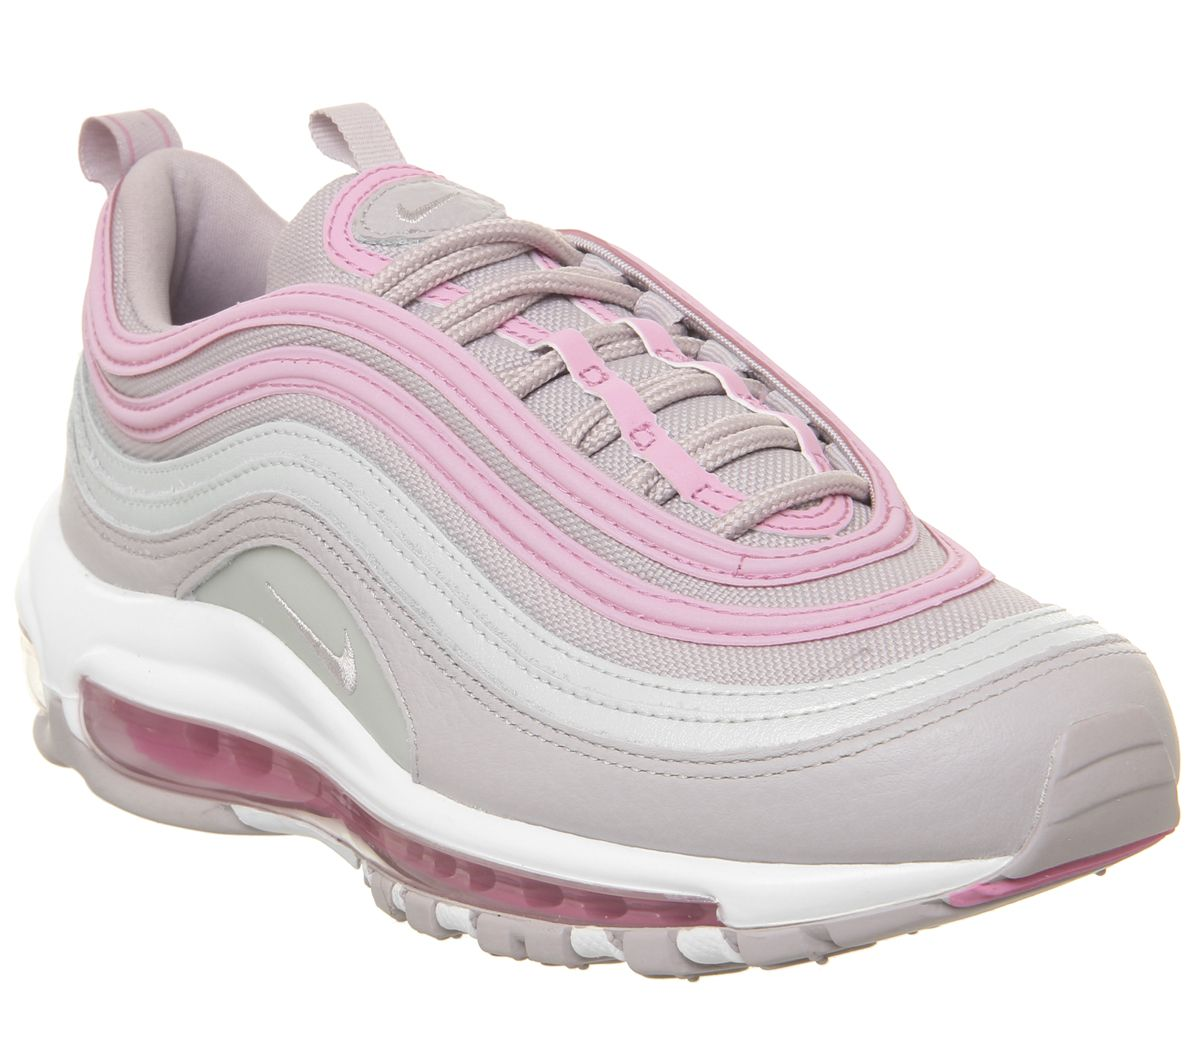 best website 836e0 7e164 Air Max 97 Trainers